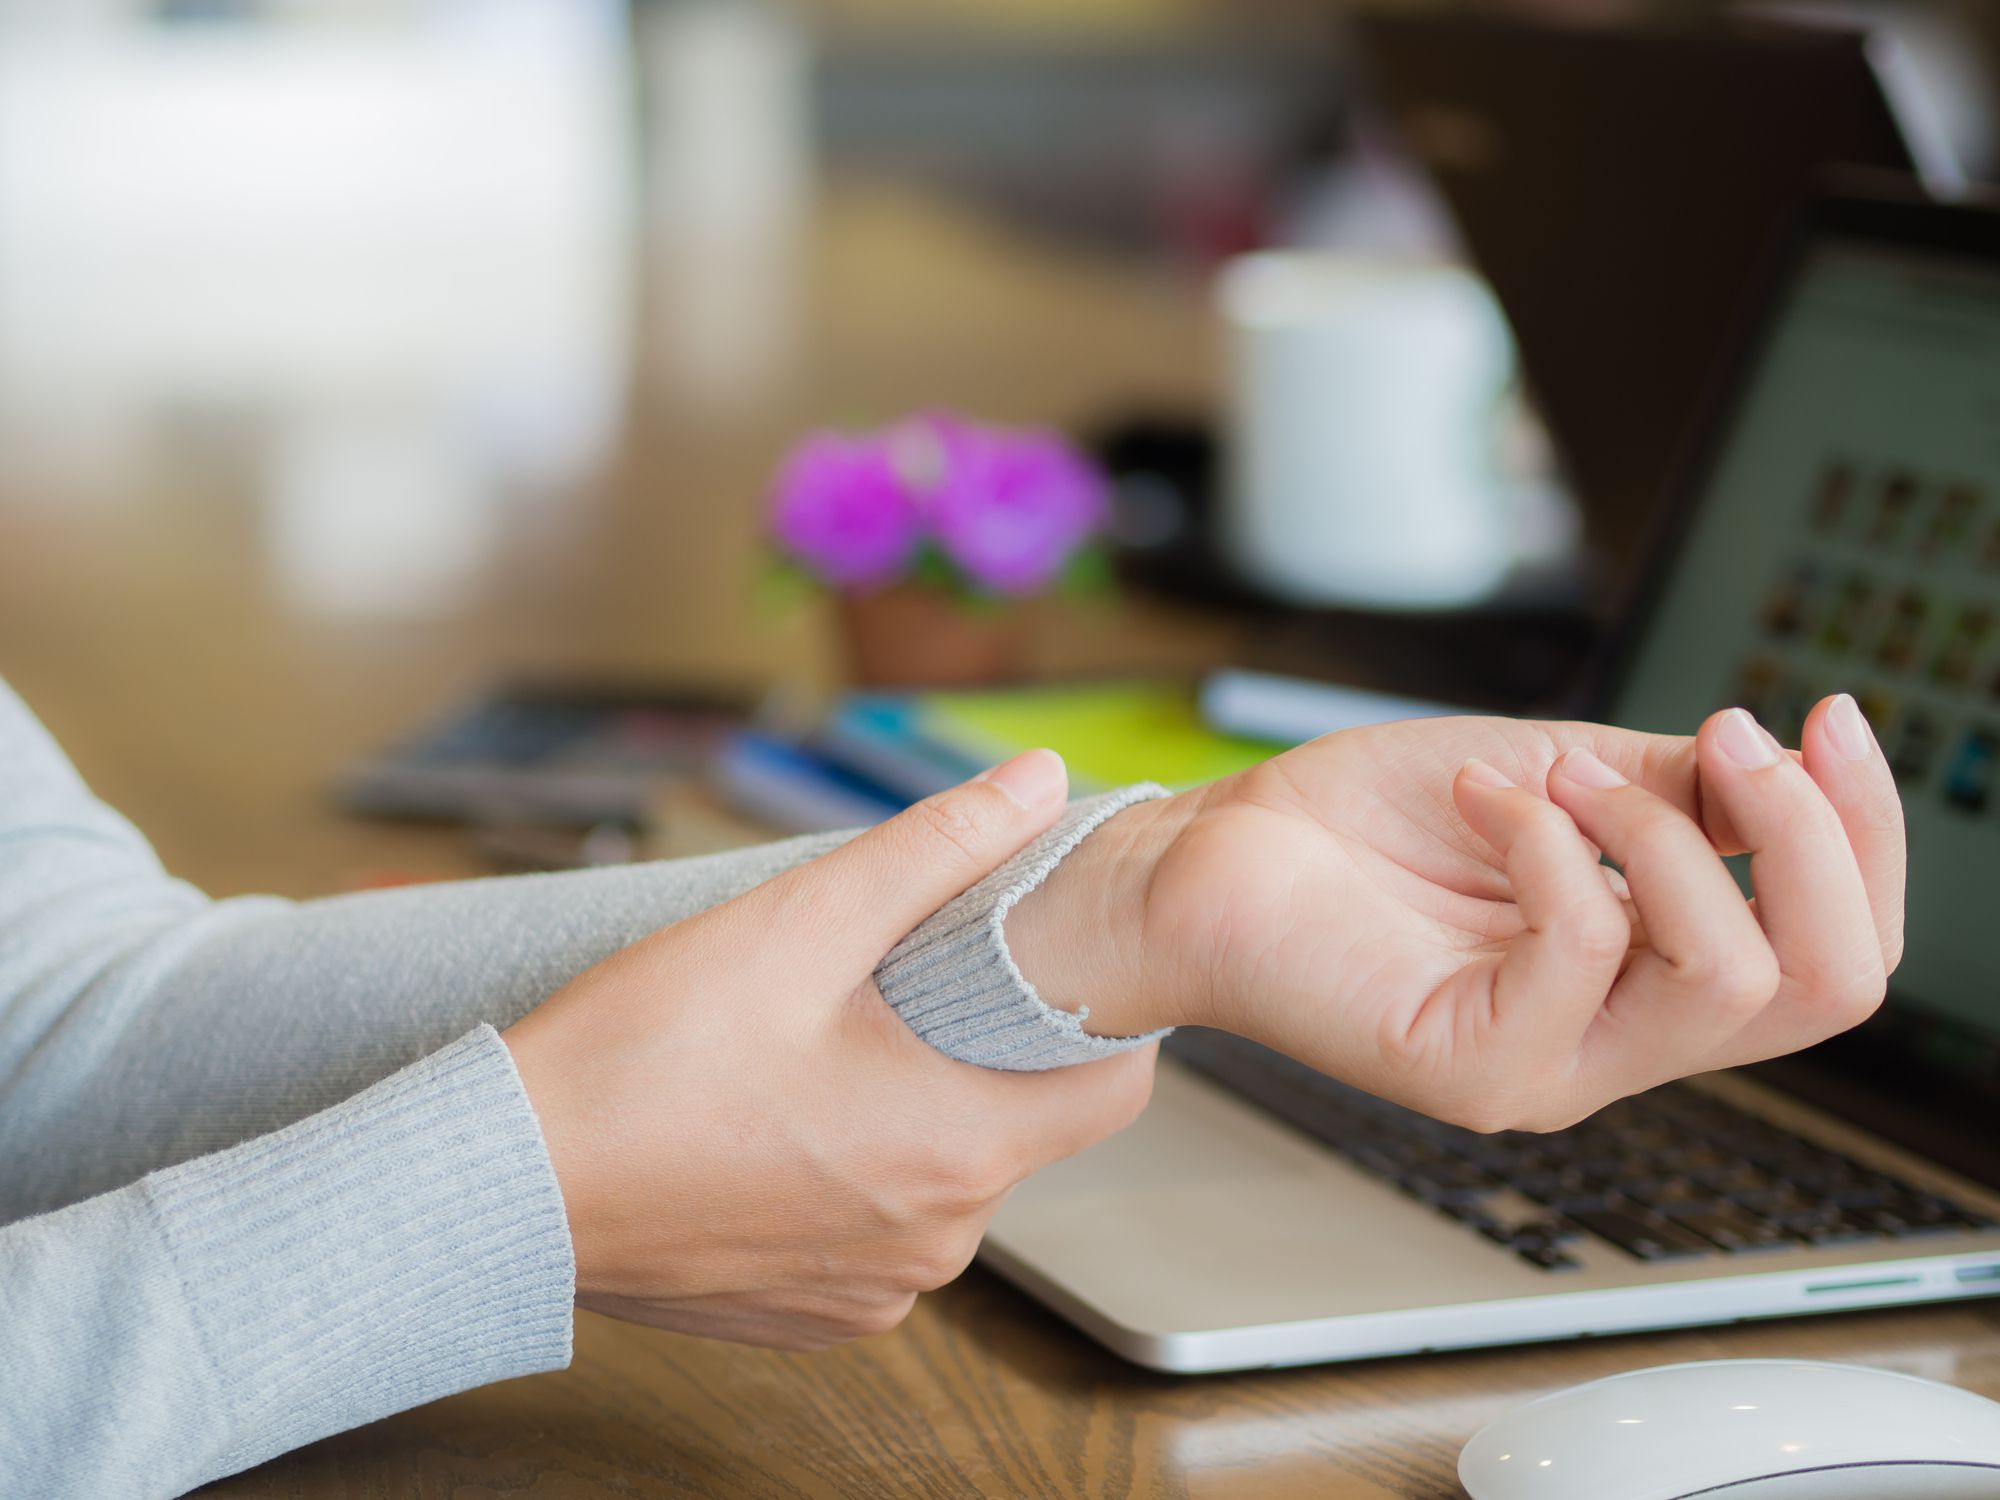 Prevention Of Carpal Tunnel Syndrome